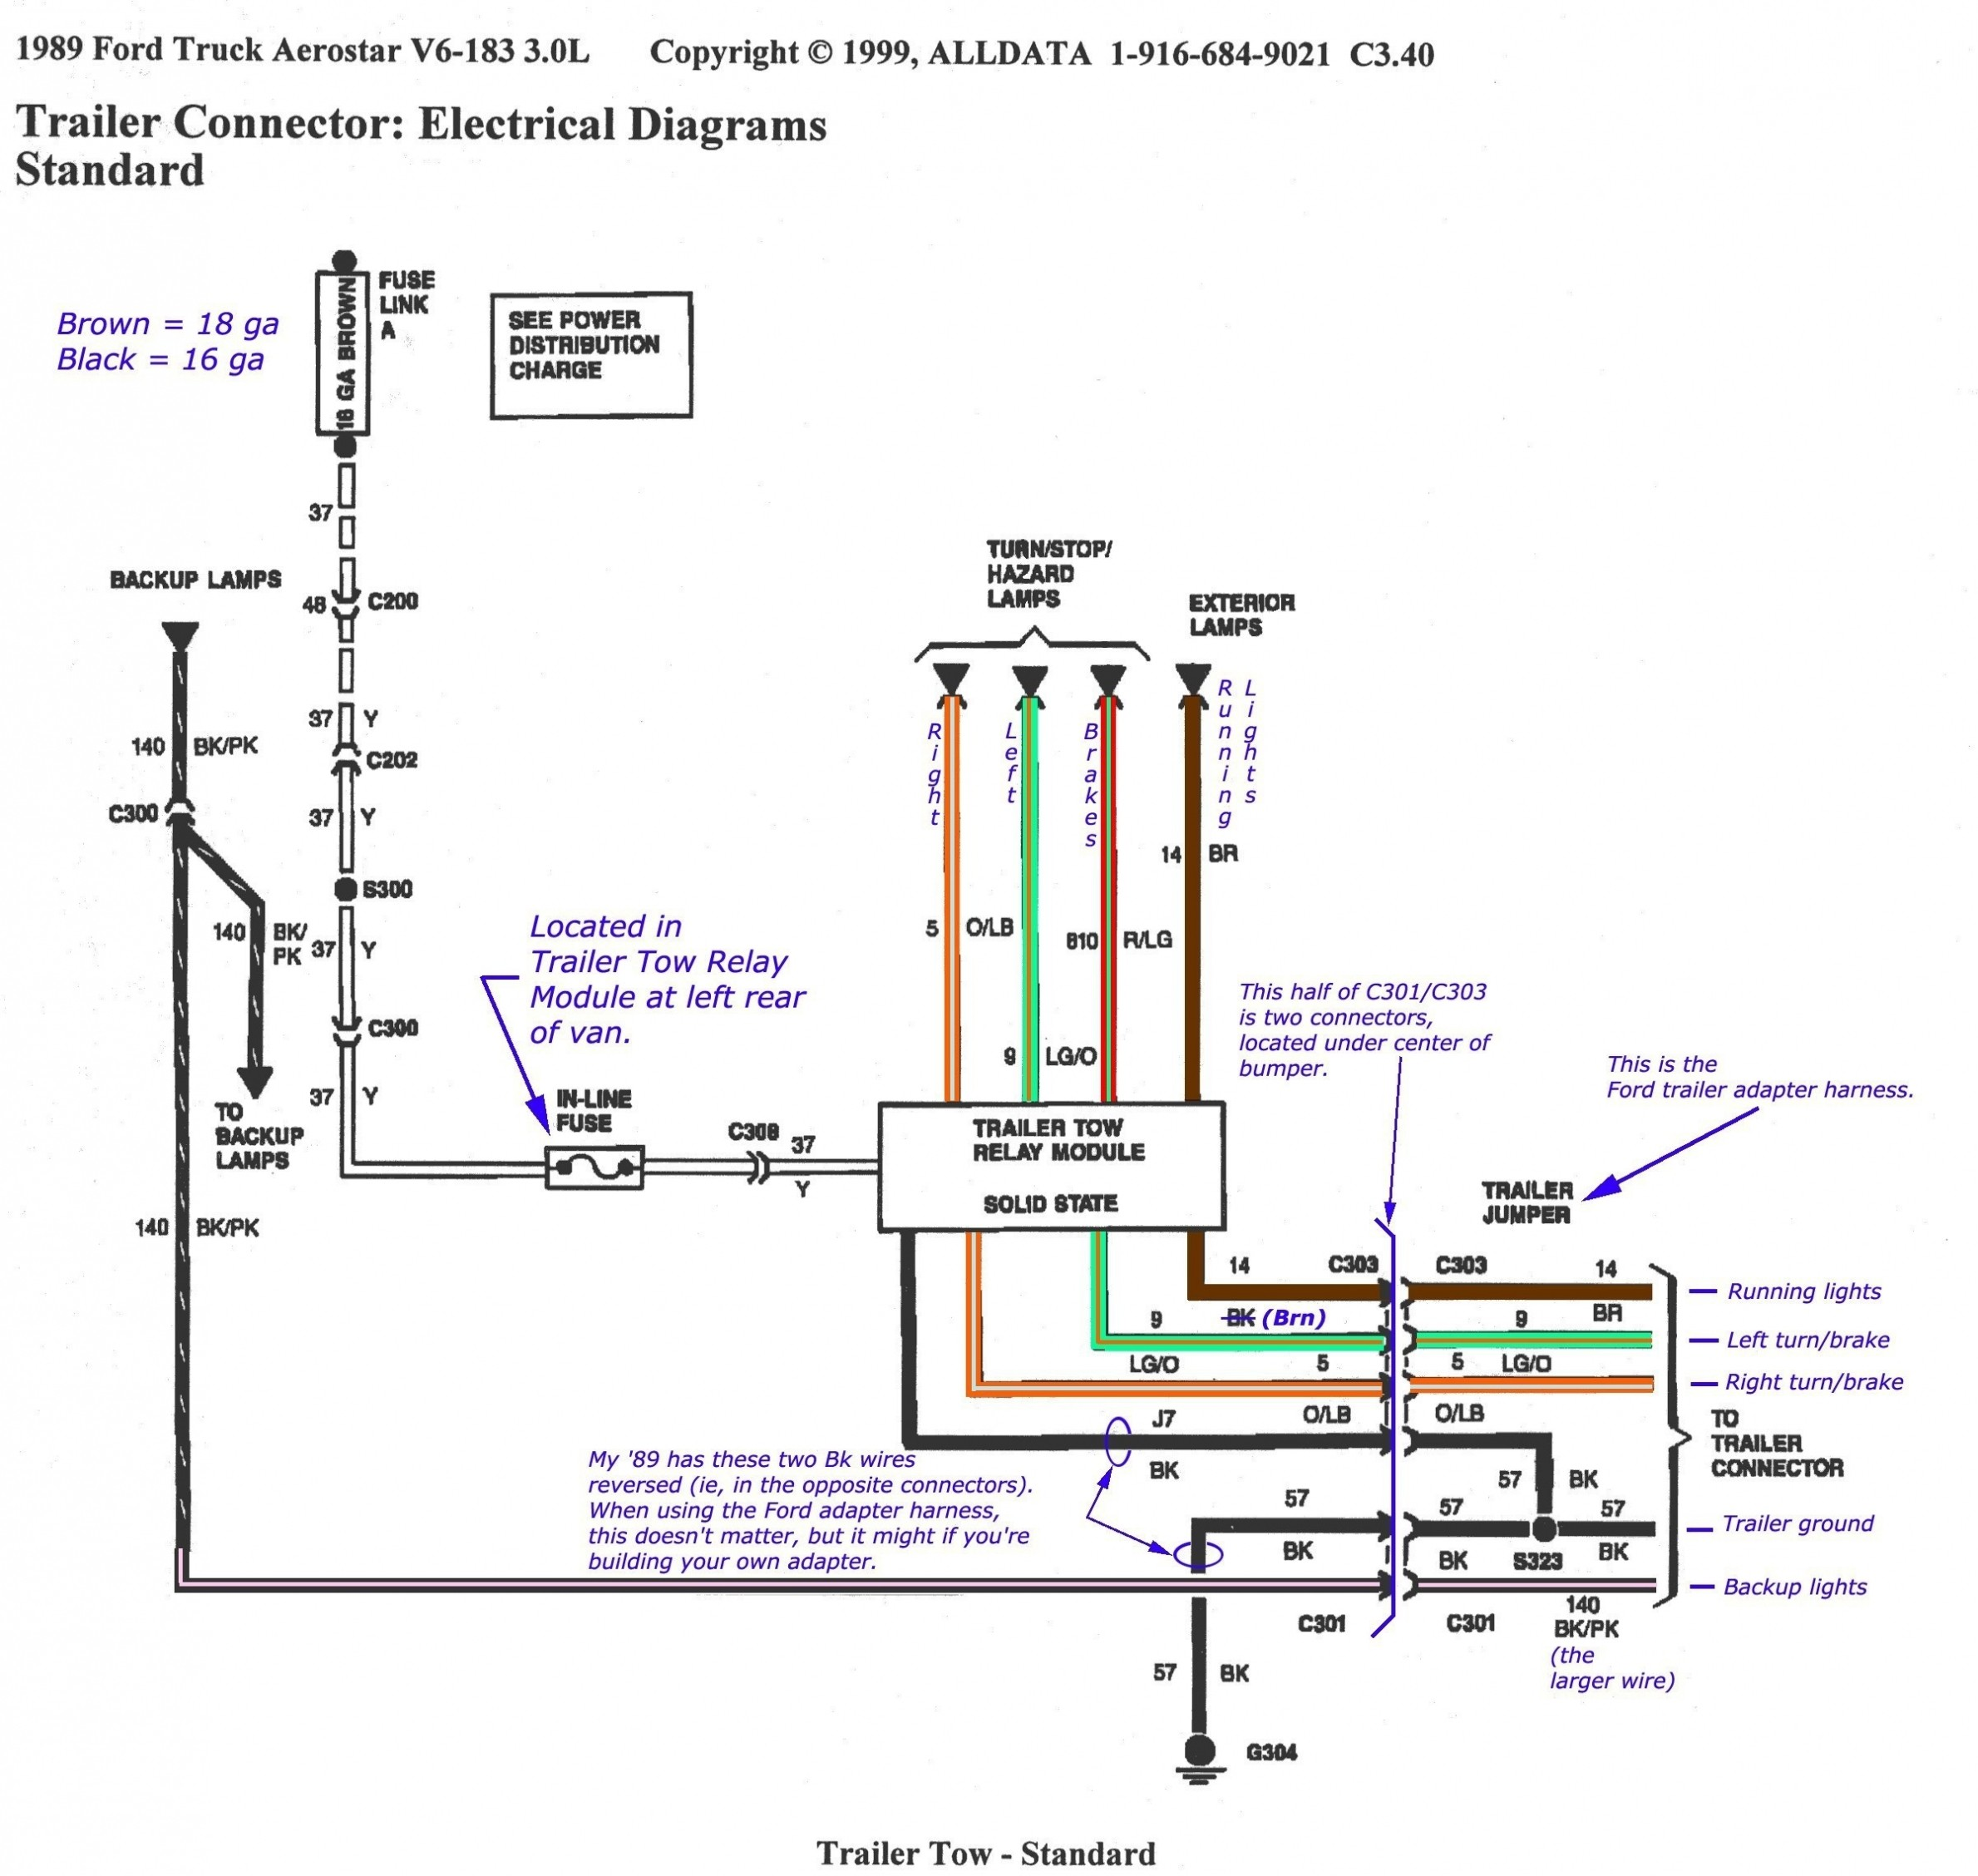 Airstream Trailer Plumbing Diagram Schematics For Acdc Wiring Further Rv Solar System Additionally Electrical Diagrams 110v Panels